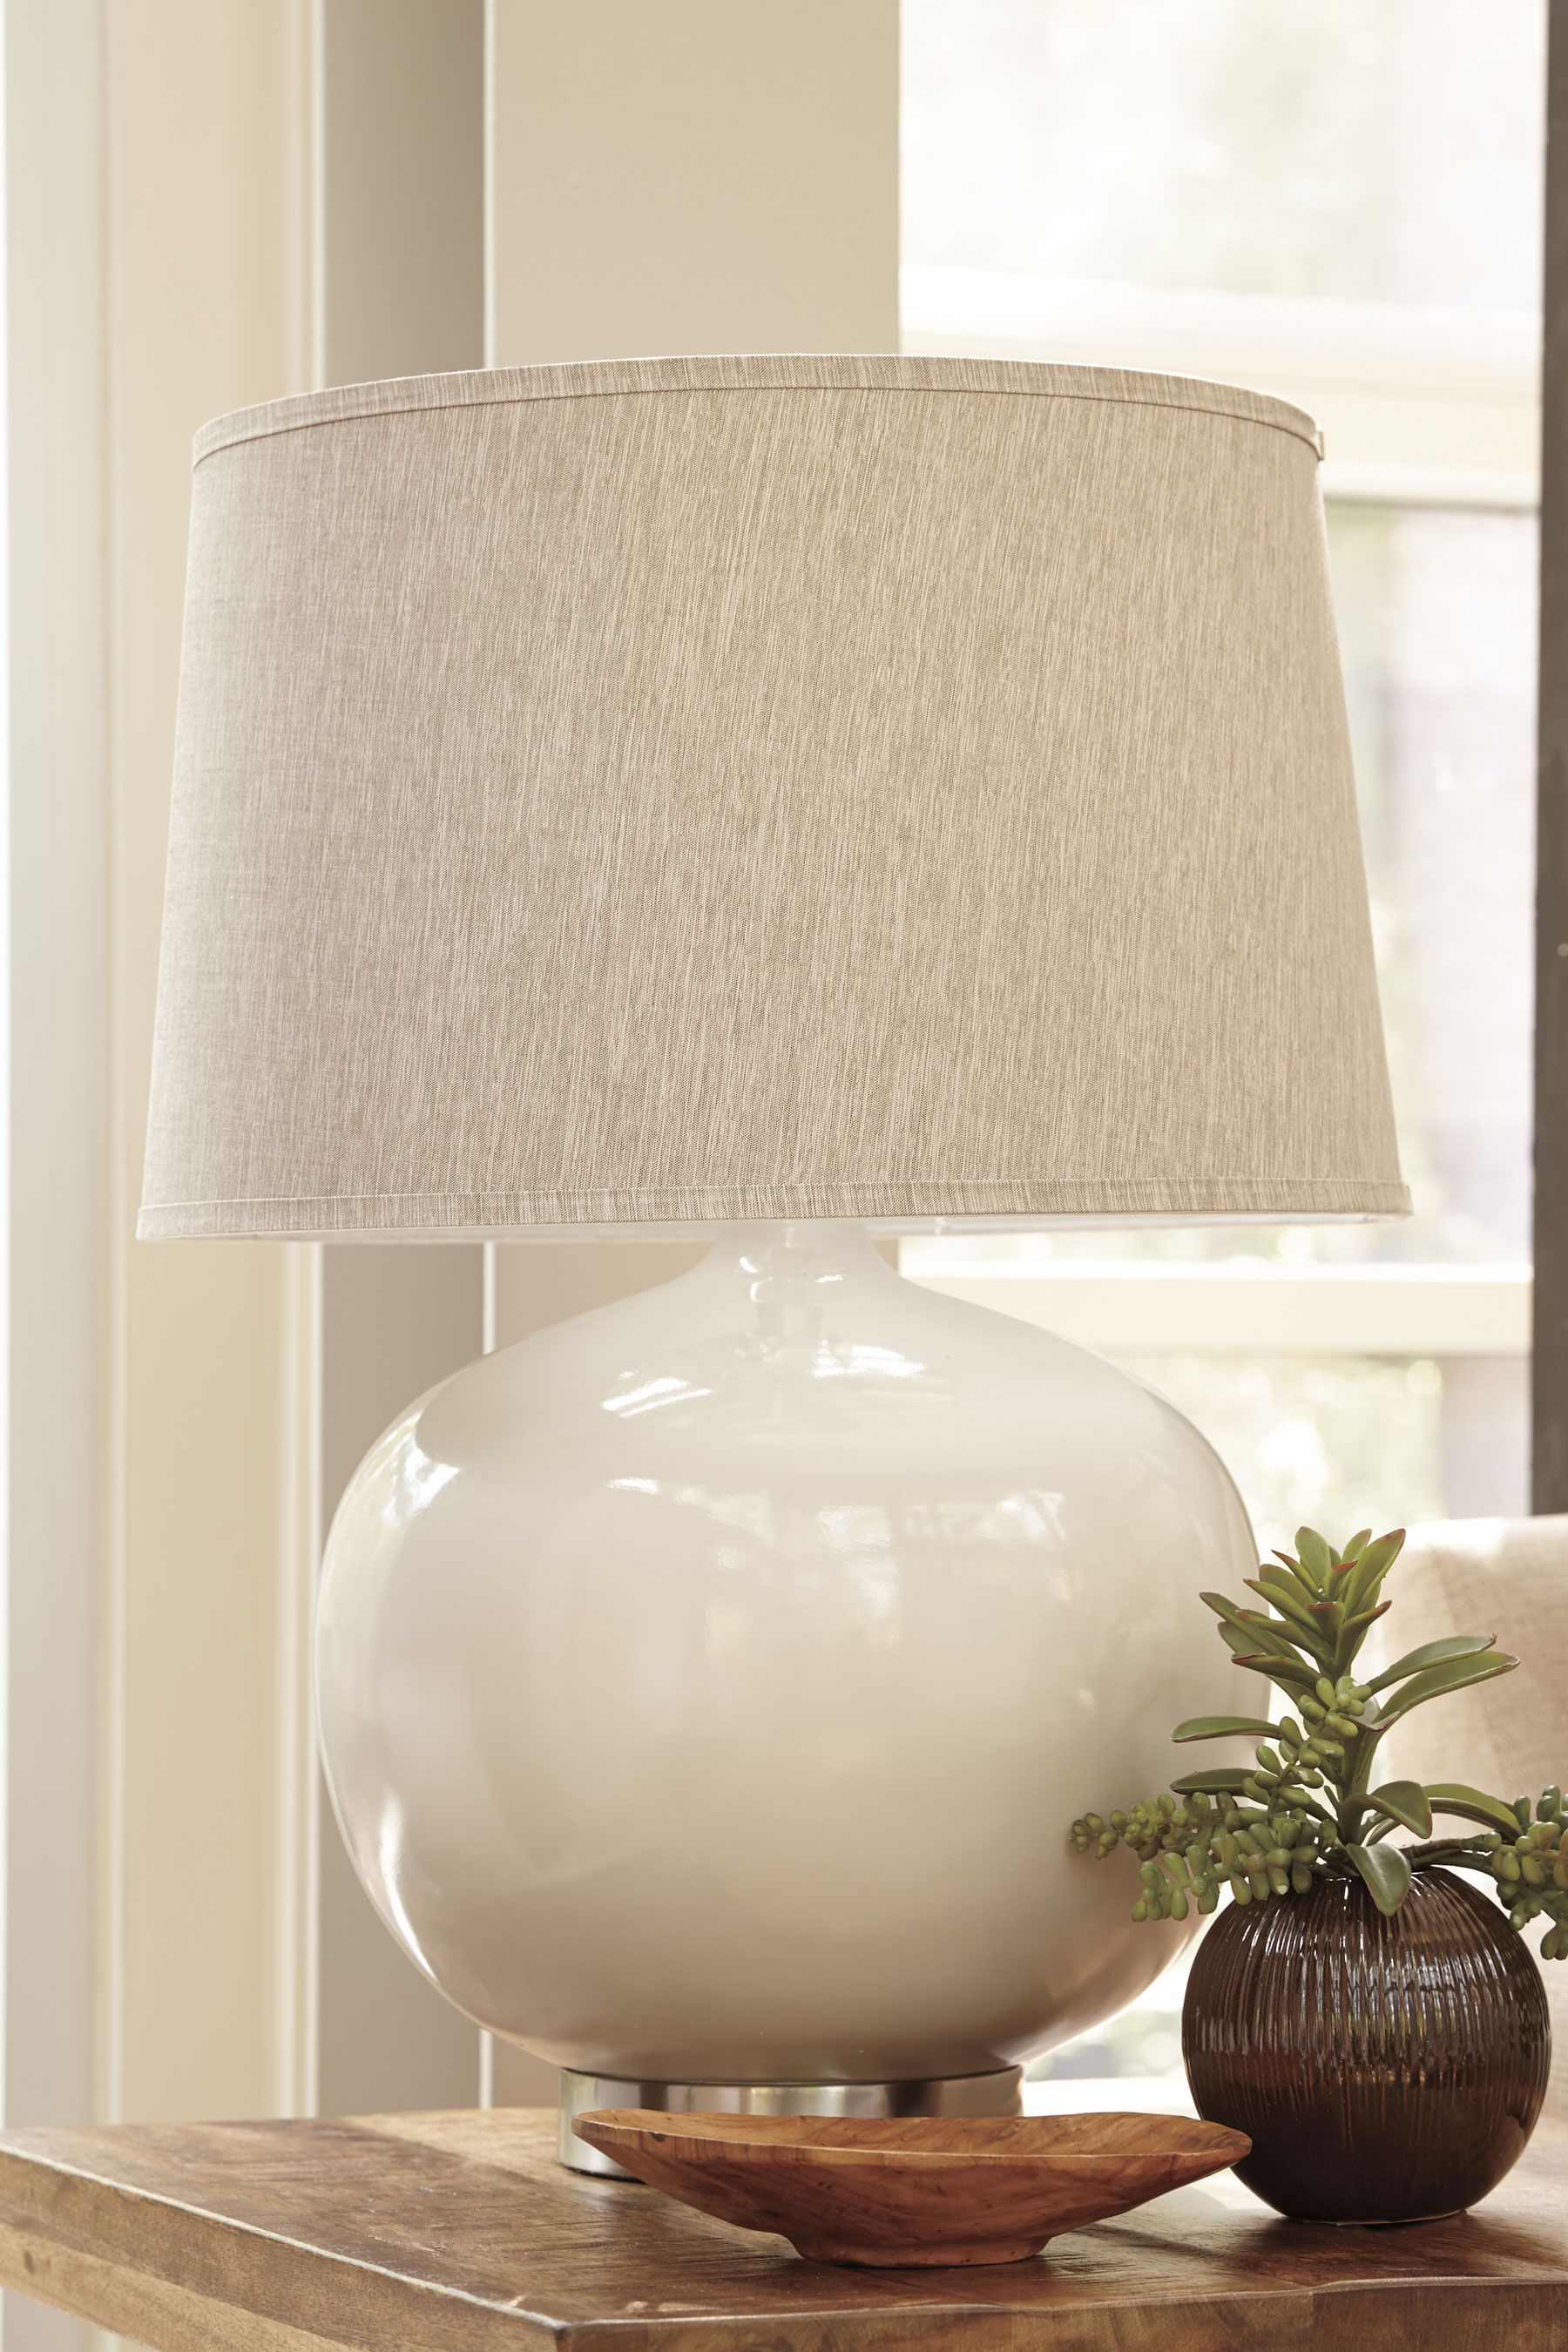 Signature Design By Ashley 29 Tall Poly Table Lamp With In Modified Drum Shade 3 Way Switch And Round Body Light Gray L235404 At Appliancesconne Mobilier Lamp